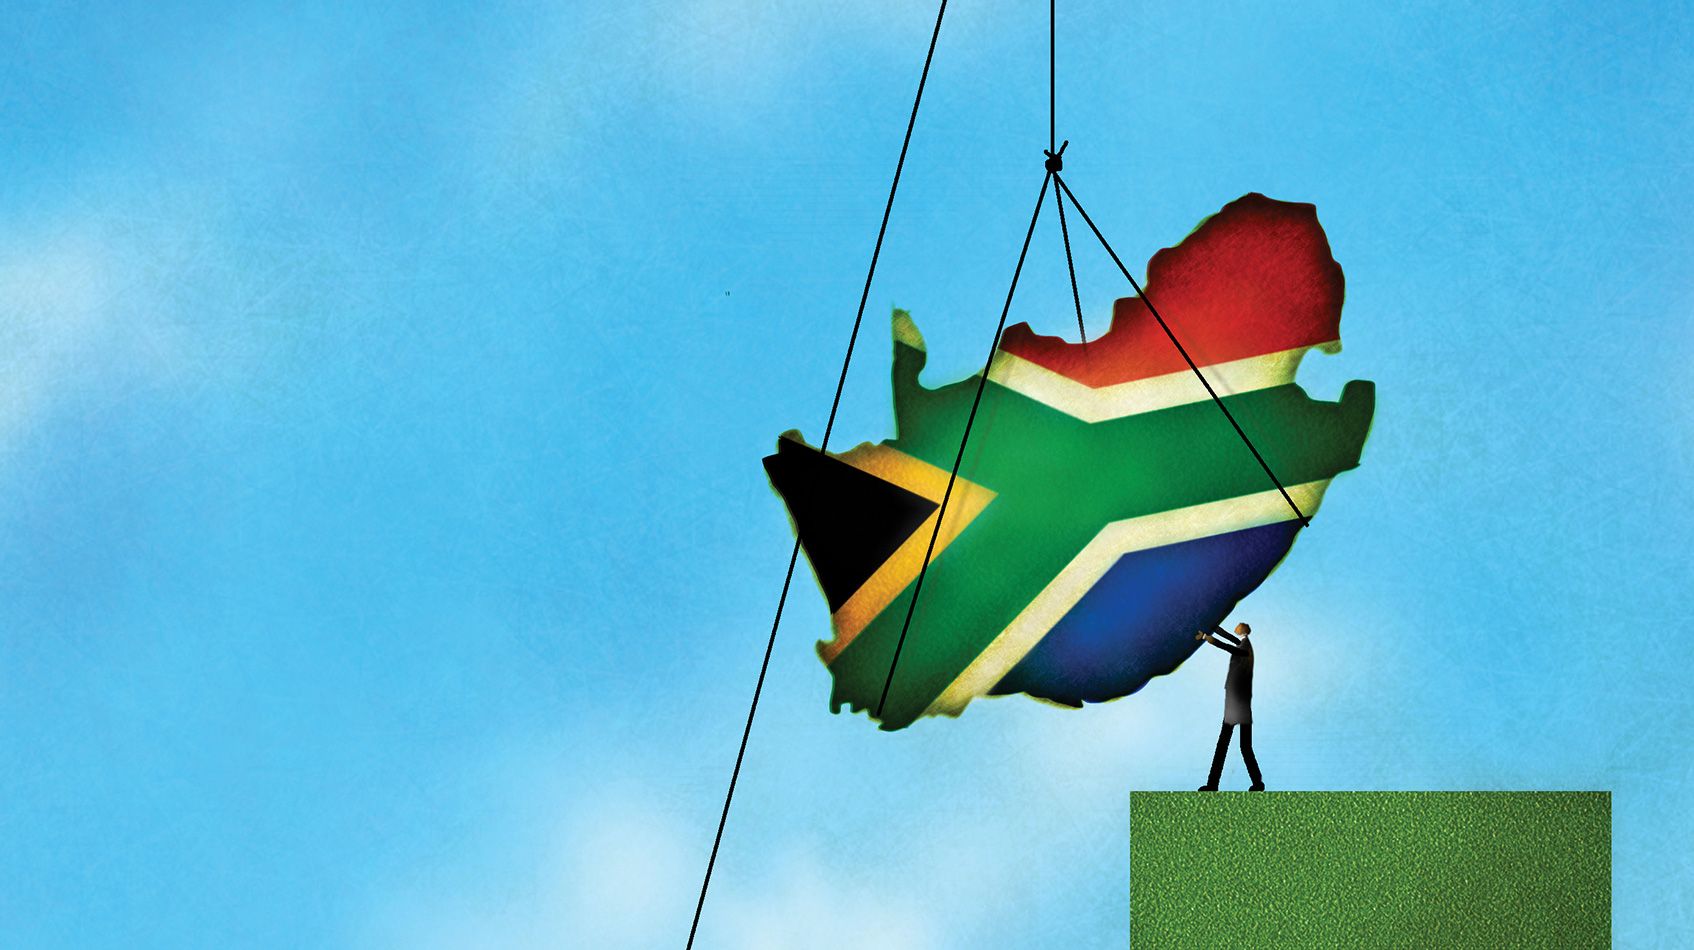 bcg south africa internship four priorities requiring leadership for south africa s future 9222